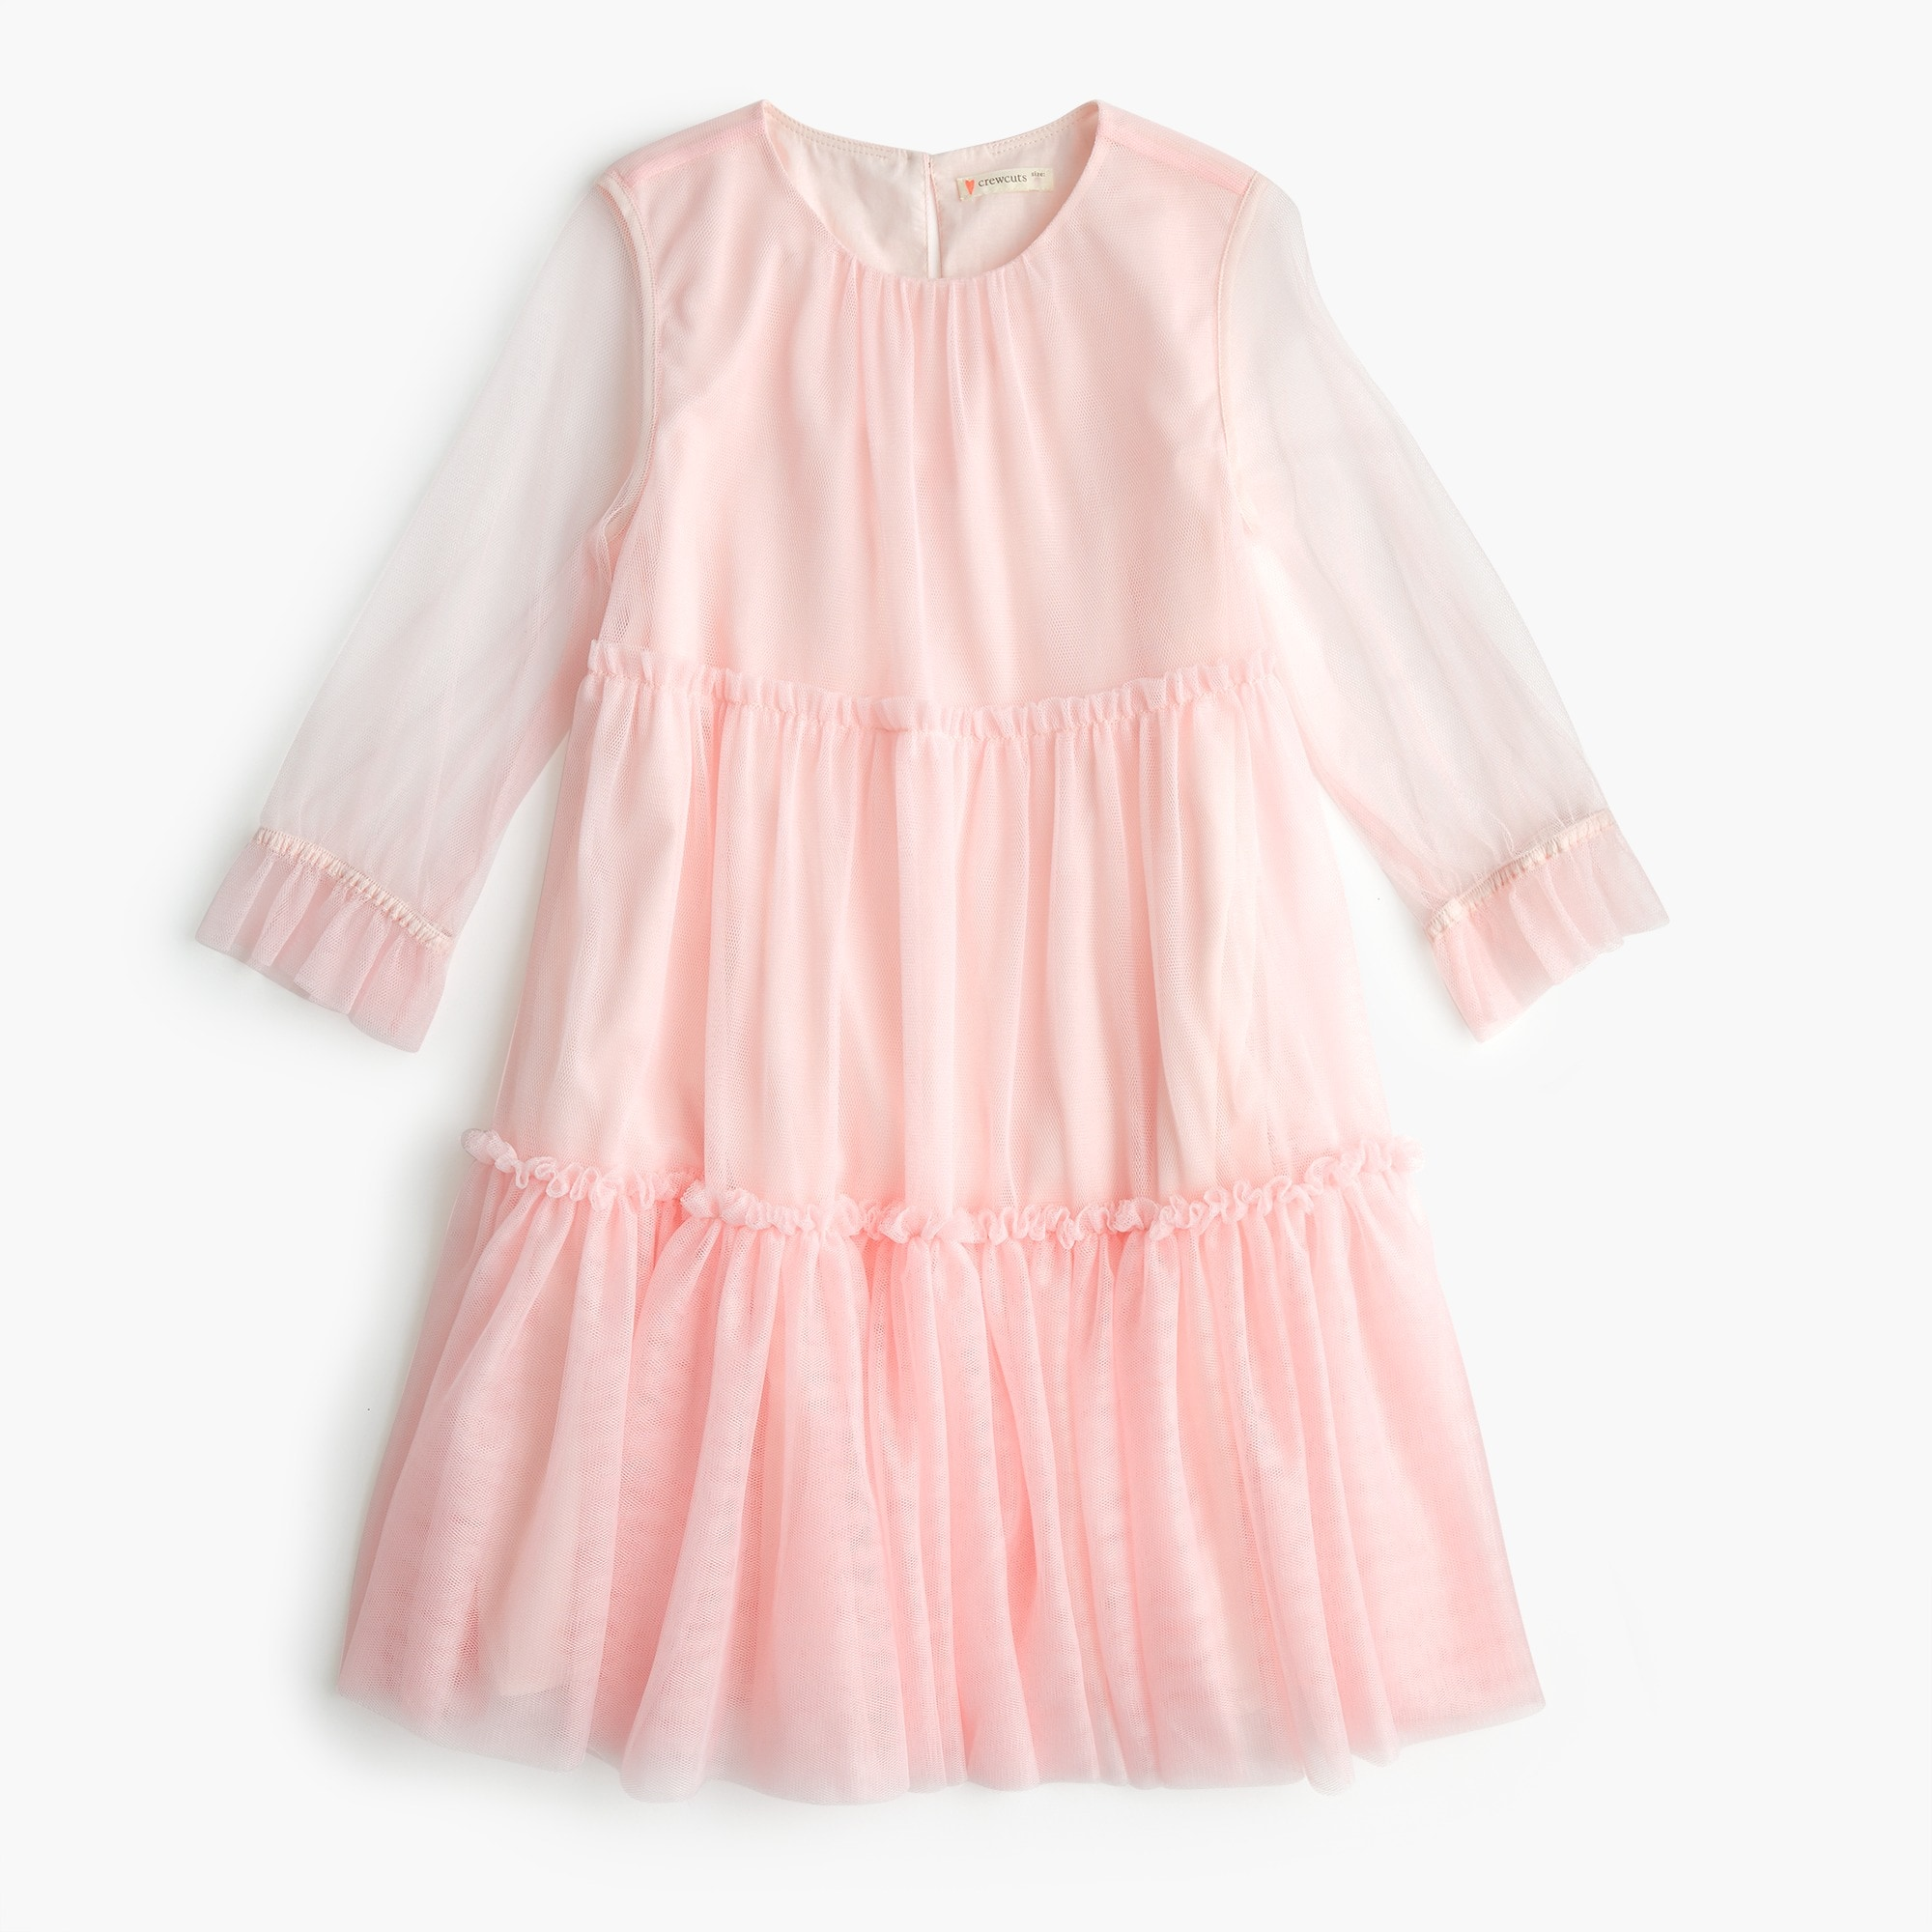 girls Girls' dress with tiered tulle overlay